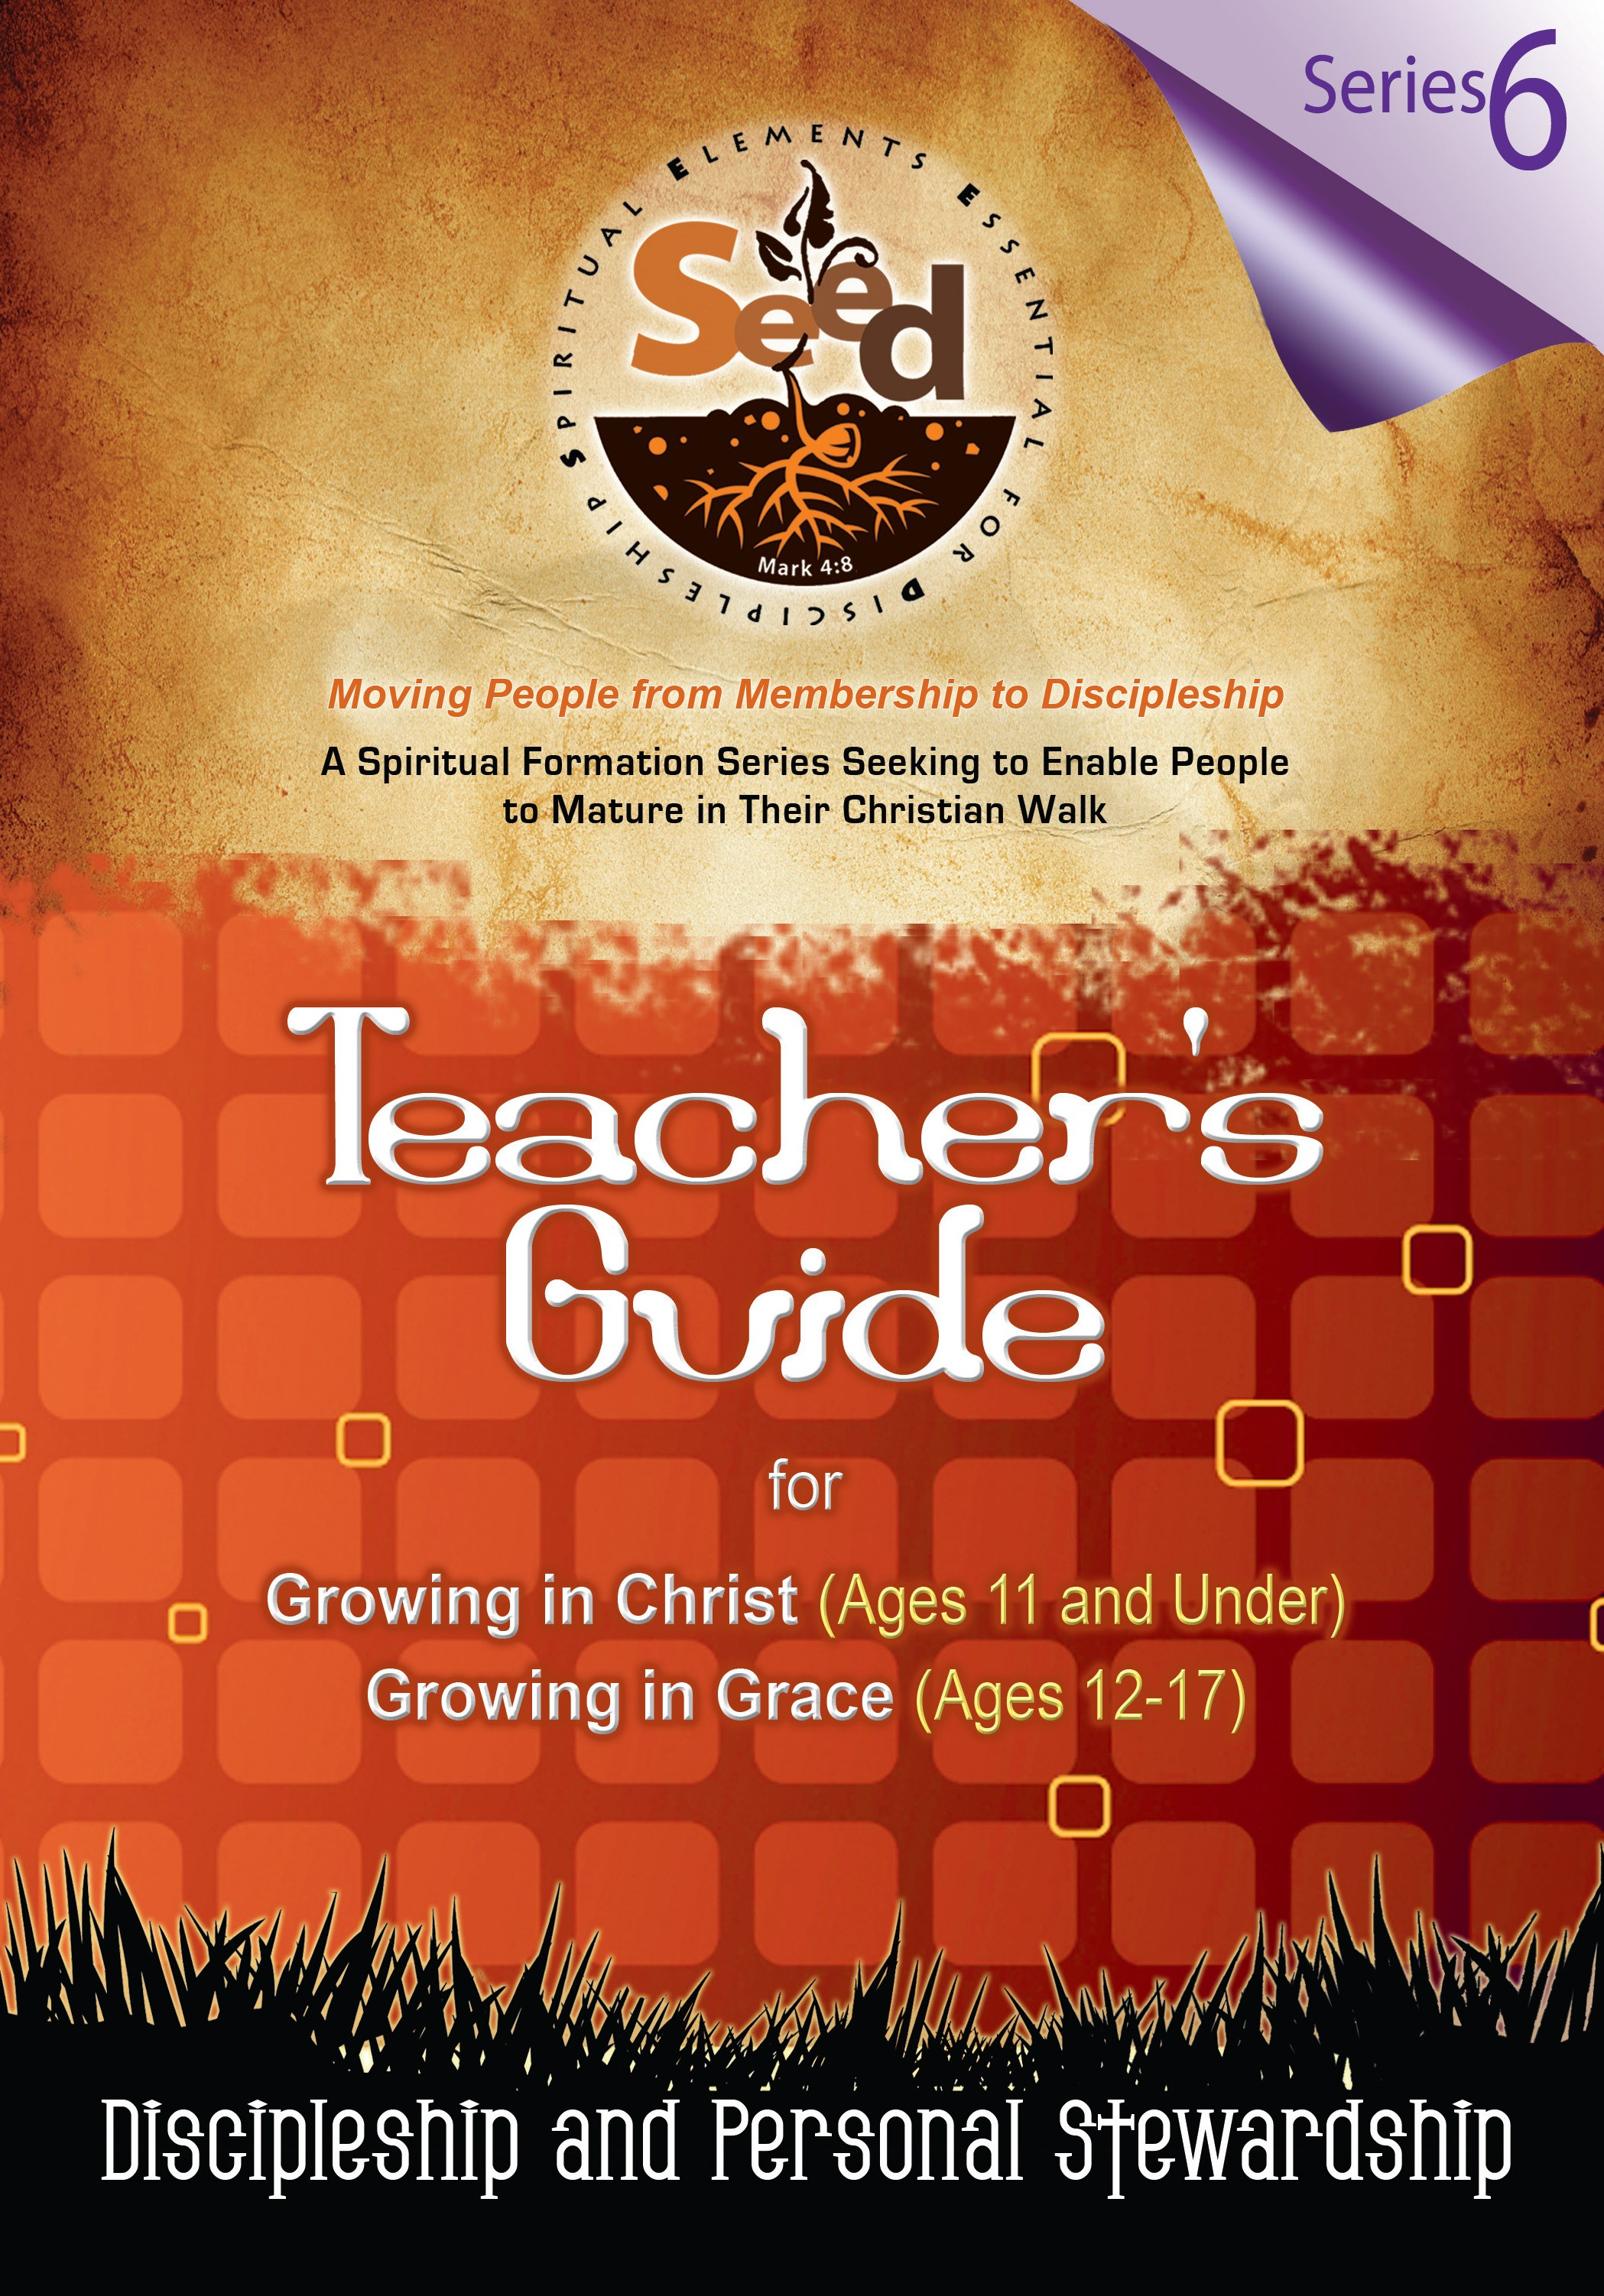 SEED Children/Youth Teacher's Guide: Series 6: Discipleship and Personal Stewardship